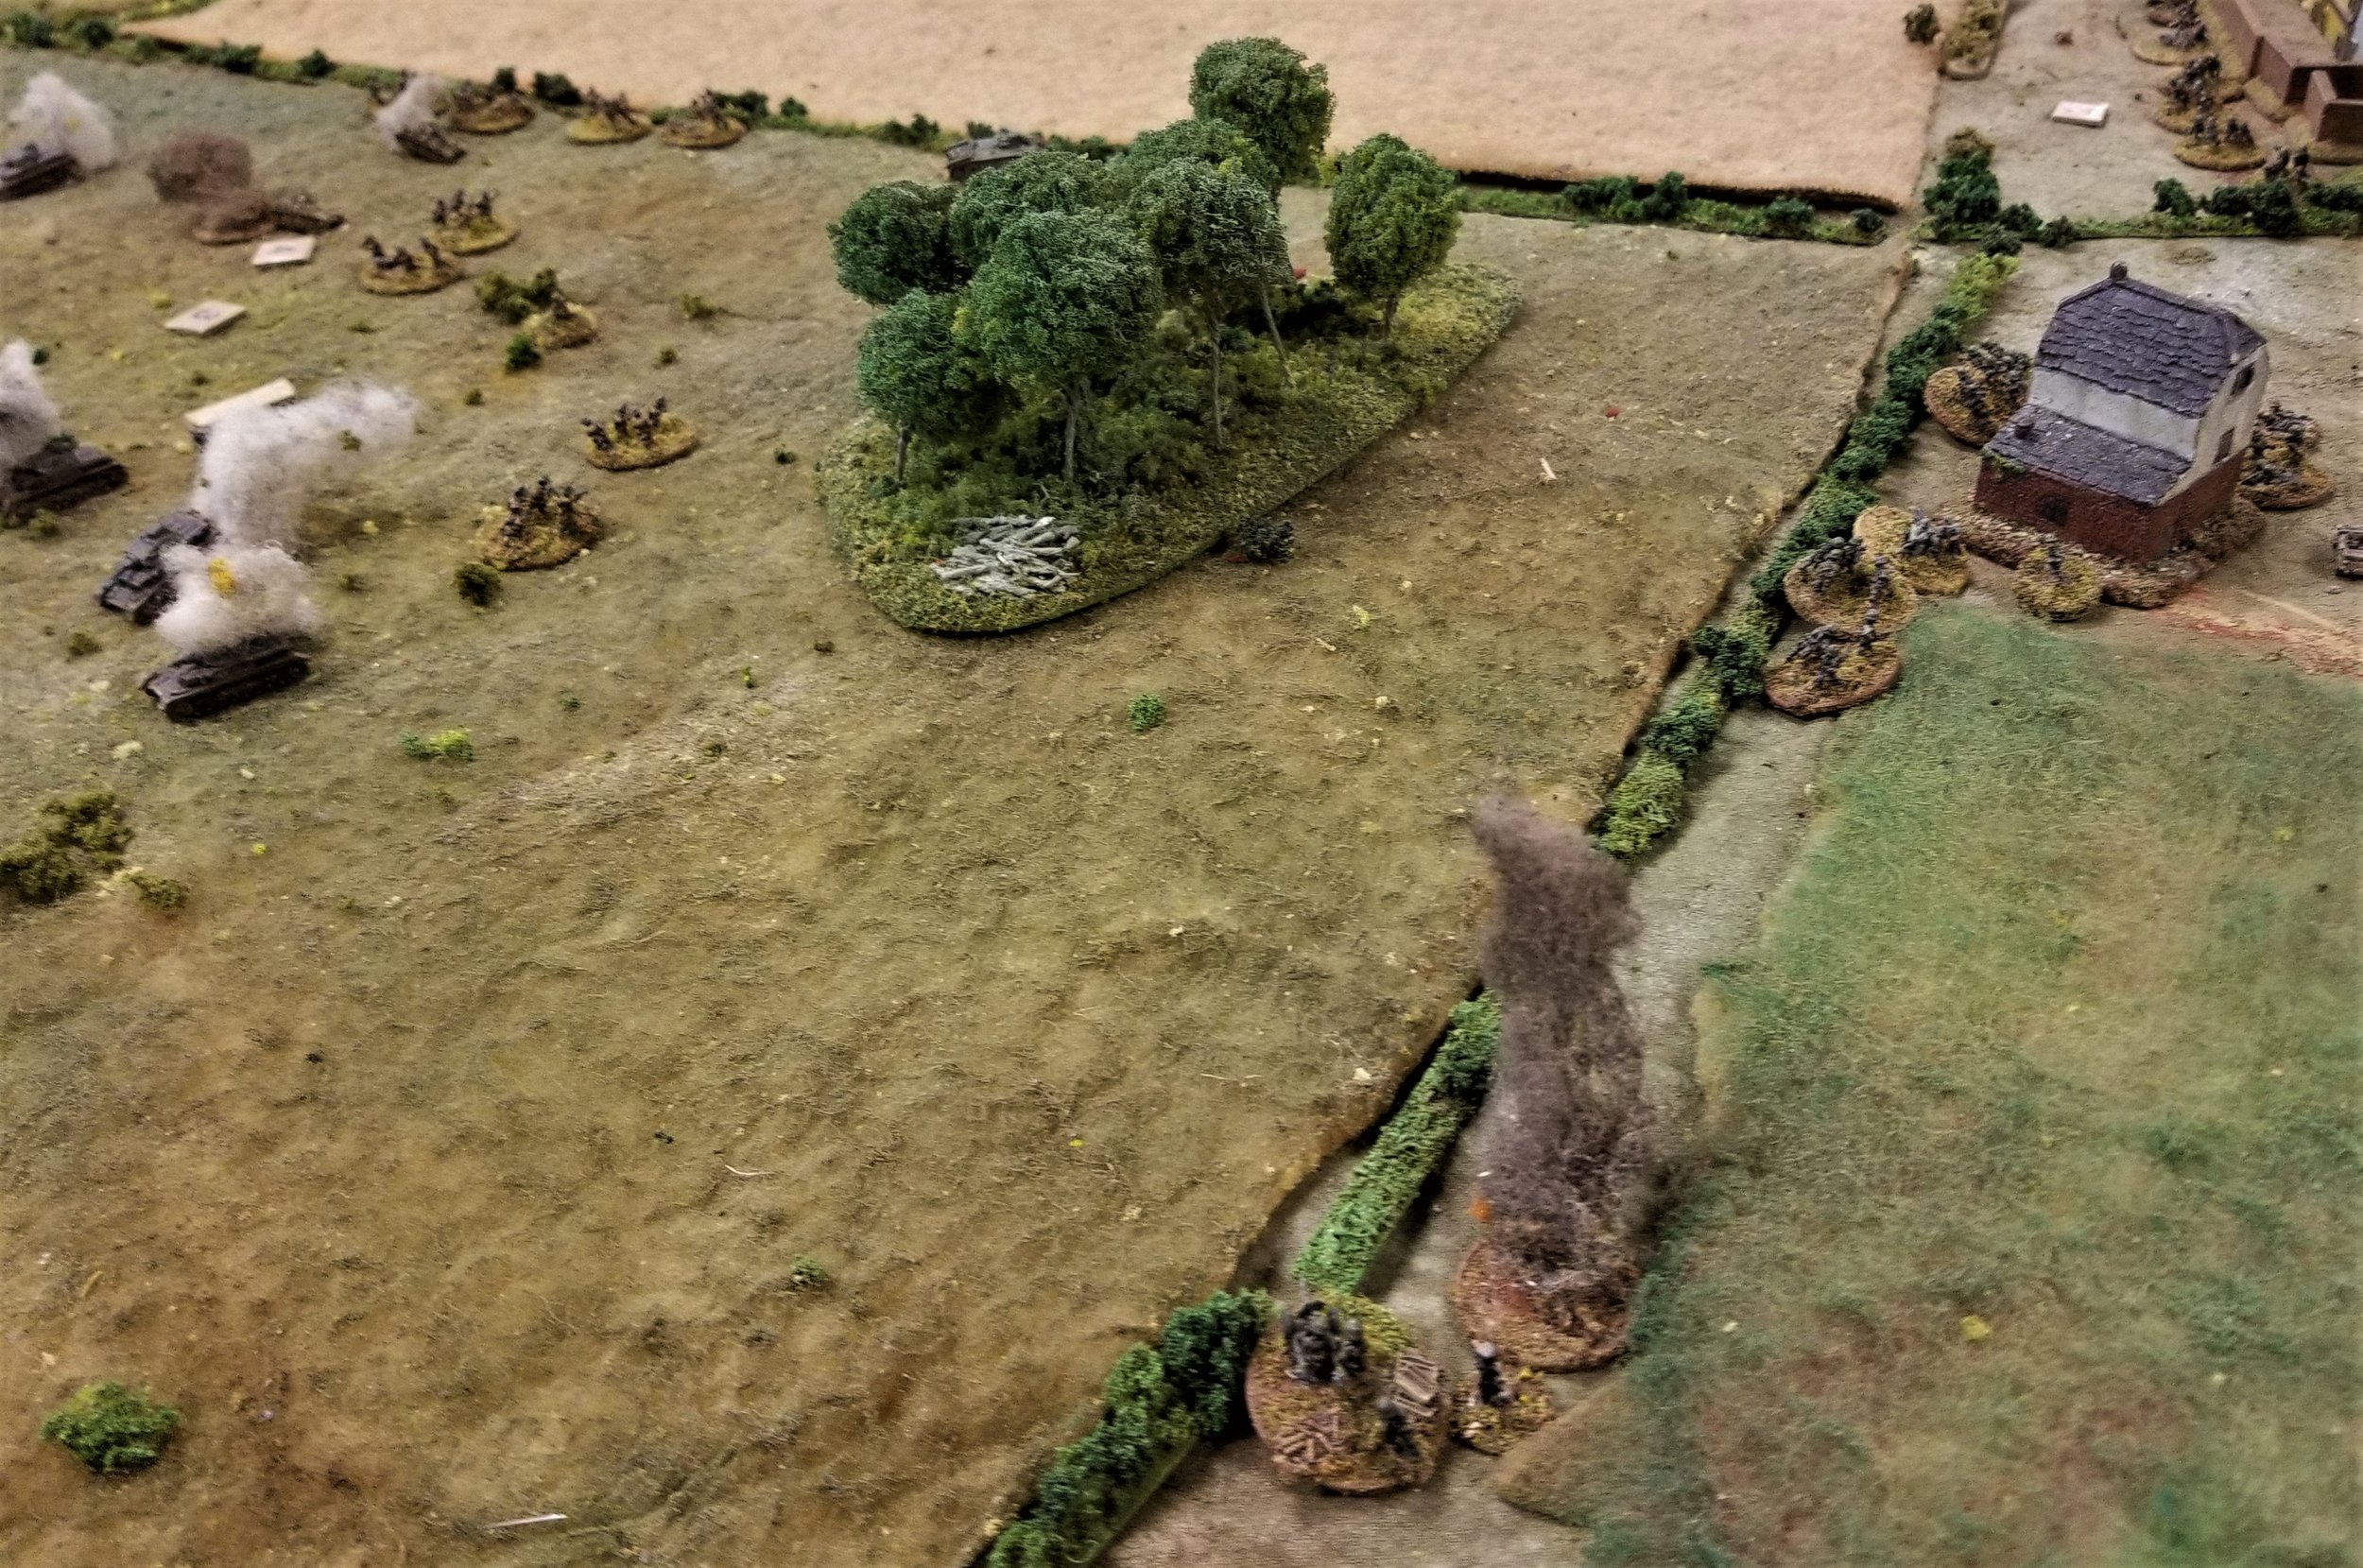 French infantry getting chewed up